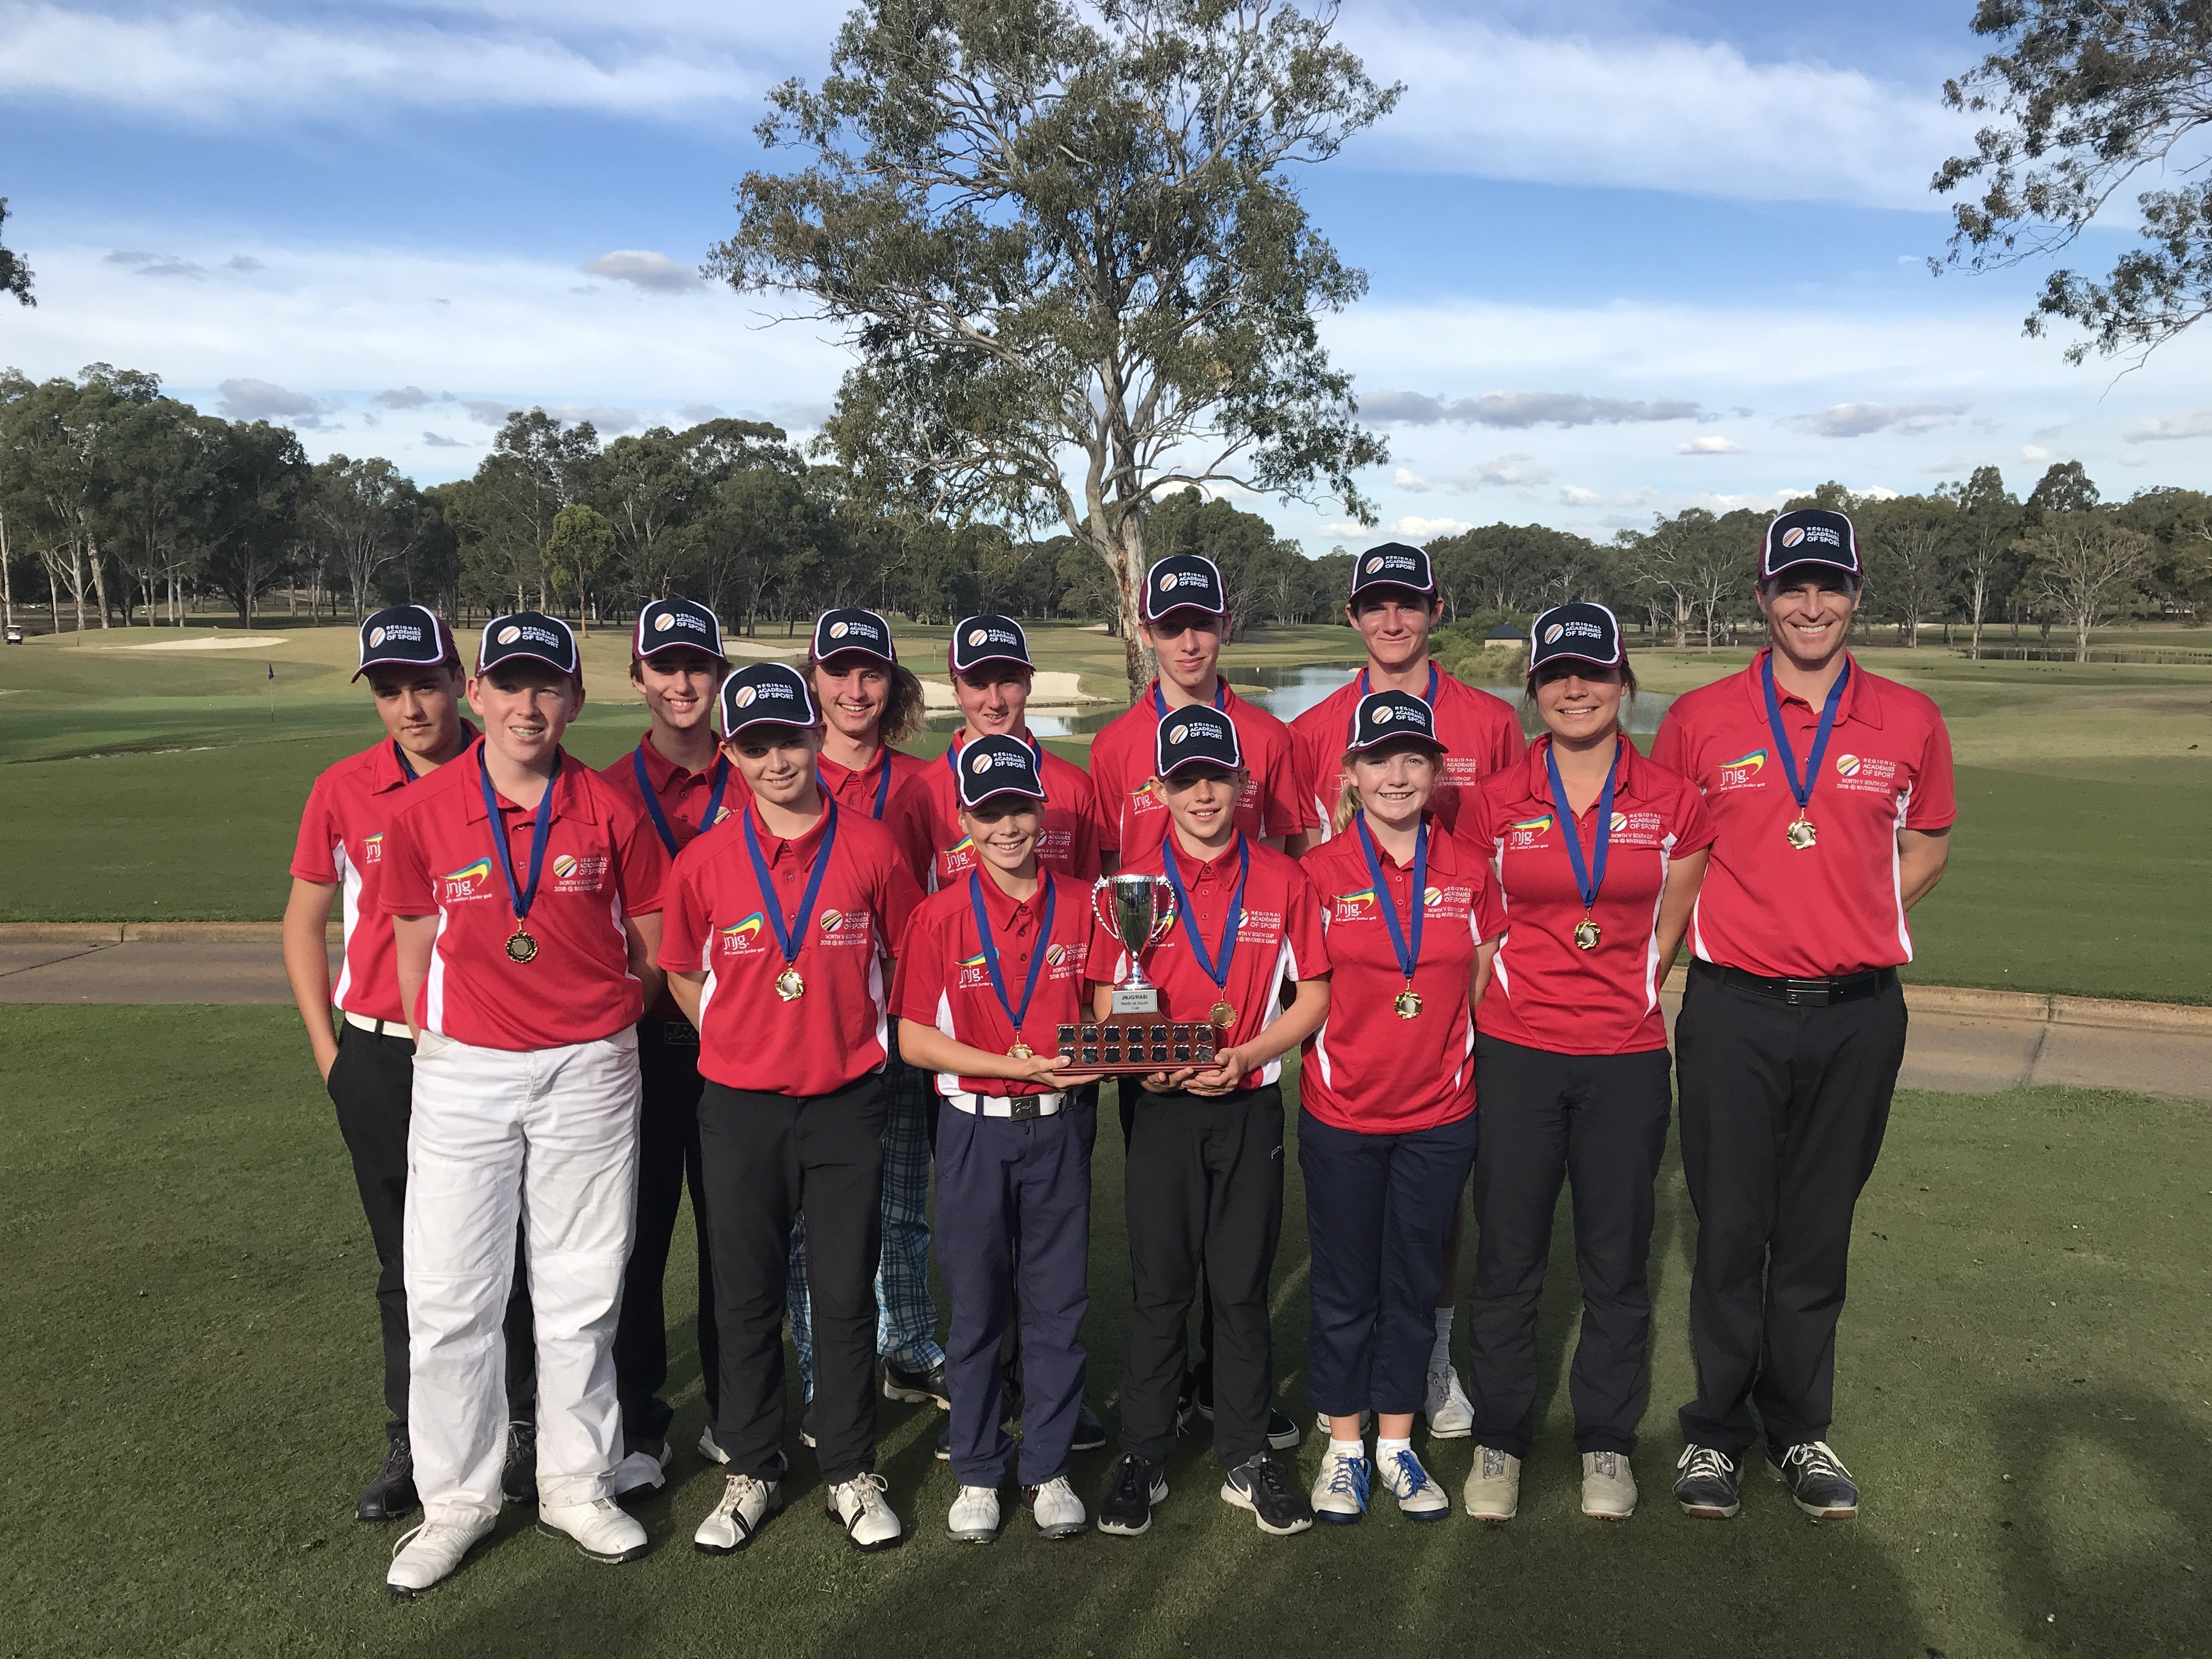 Three Hunter Academy of Sport (HAS) golfers represented North at the inaugural North vs South Jack Newton Regional Academies of Sport golf tournament held at Riverside Oaks Golf Club in Cattai at the weekend.